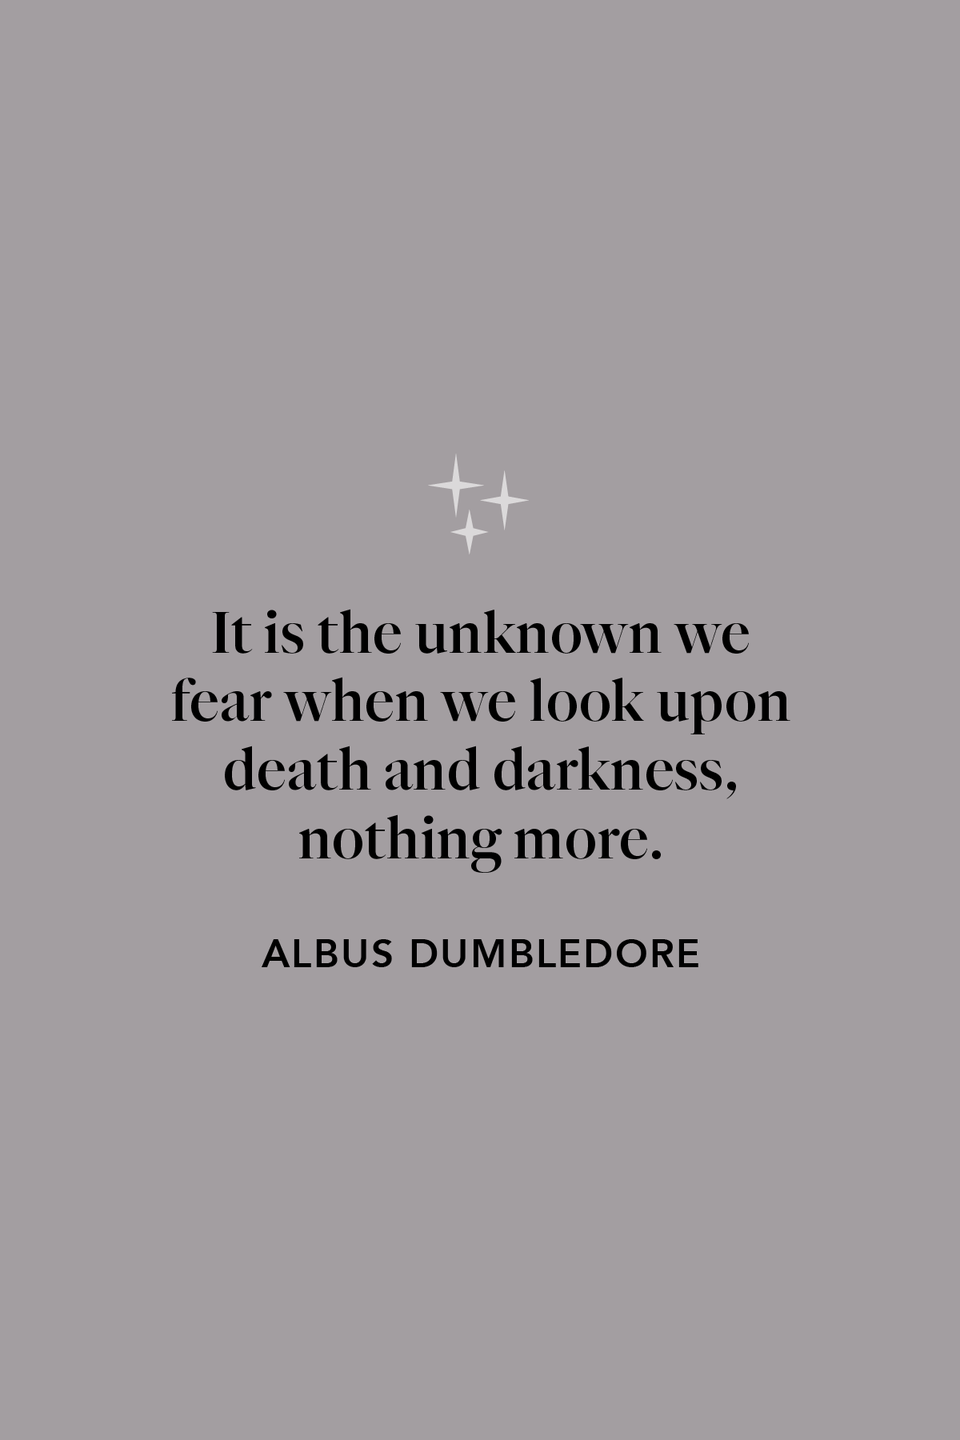 """<p>""""It is the unknown we fear when we look upon death and darkness, nothing more,"""" Albus Dumbledore says to Harry <a href=""""https://www.amazon.com/Harry-Potter-Half-Blood-Prince-Book/dp/0439784549?tag=syn-yahoo-20&ascsubtag=%5Bartid%7C10072.g.32302254%5Bsrc%7Cyahoo-us"""" rel=""""nofollow noopener"""" target=""""_blank"""" data-ylk=""""slk:in The Half-Blood Prince'"""" class=""""link rapid-noclick-resp"""">in <em>The Half-Blood Prince</em>'</a>s chapter 26, """"The Cave.""""</p>"""